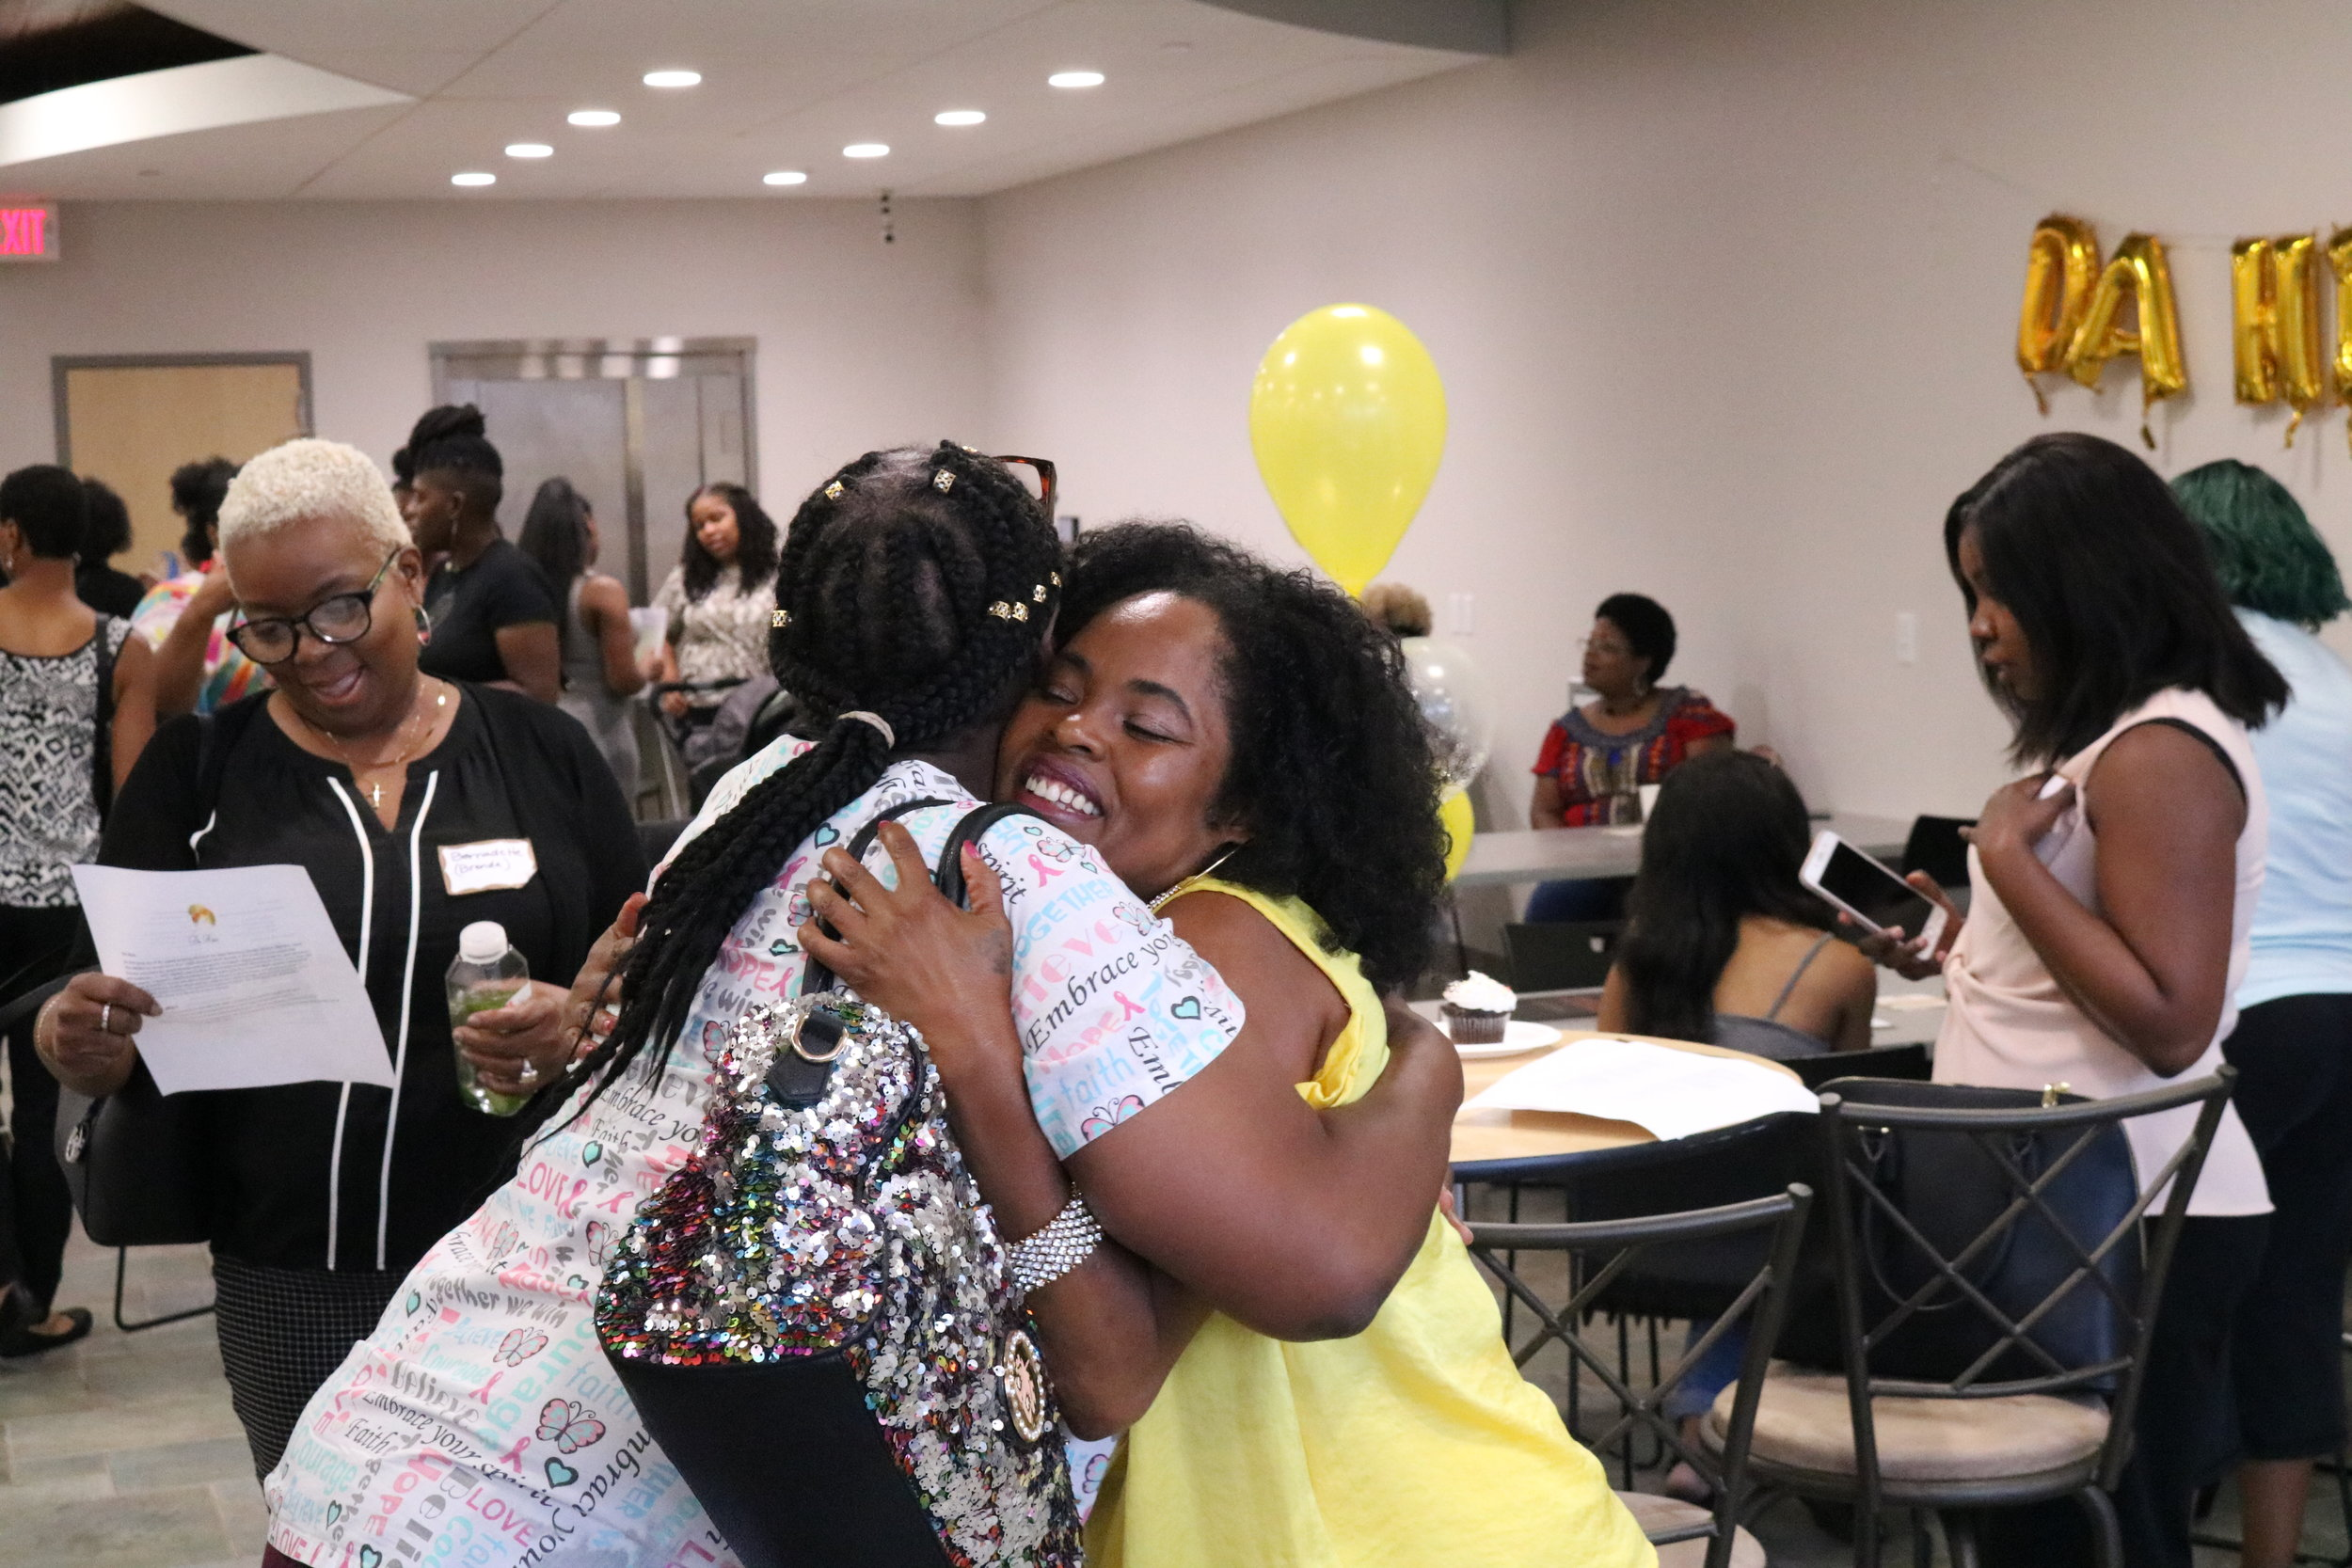 Kenya McKnight (right) embraces family, friends, and colleagues as she celebrates the launch of Da Hive, a coworking space for black women to gain economic empowerment.